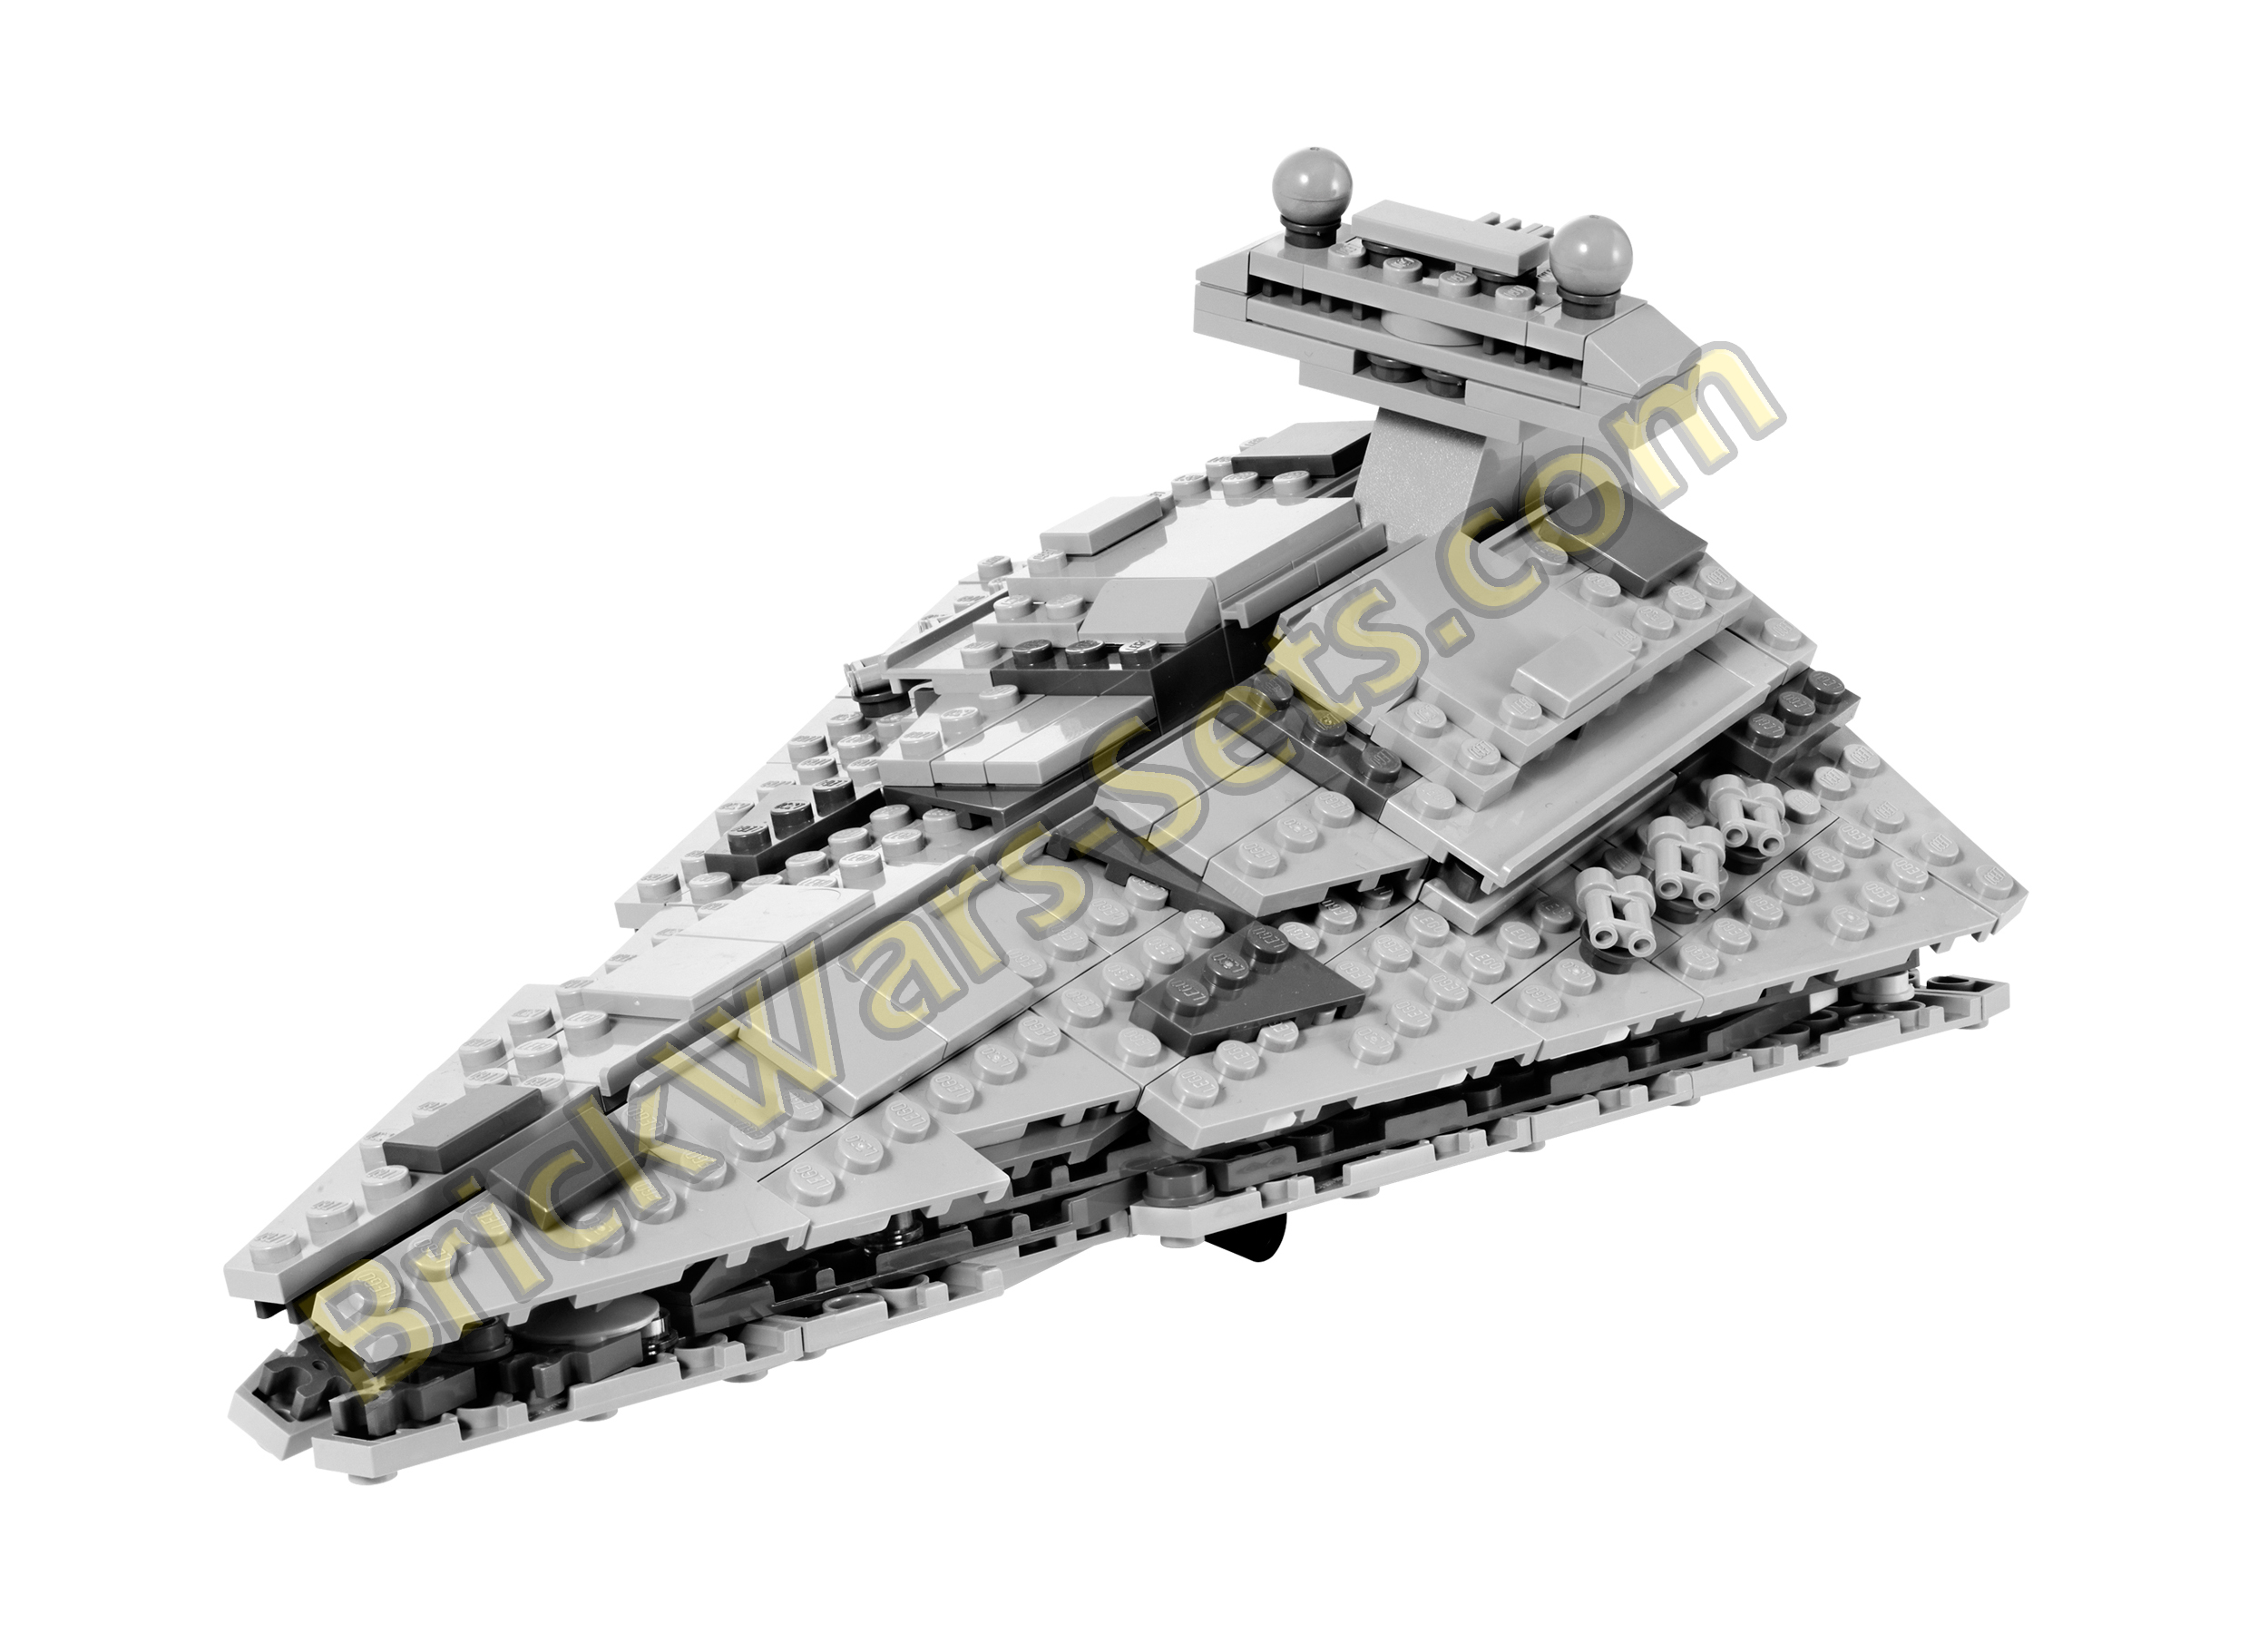 lego star destroyer - photo #19